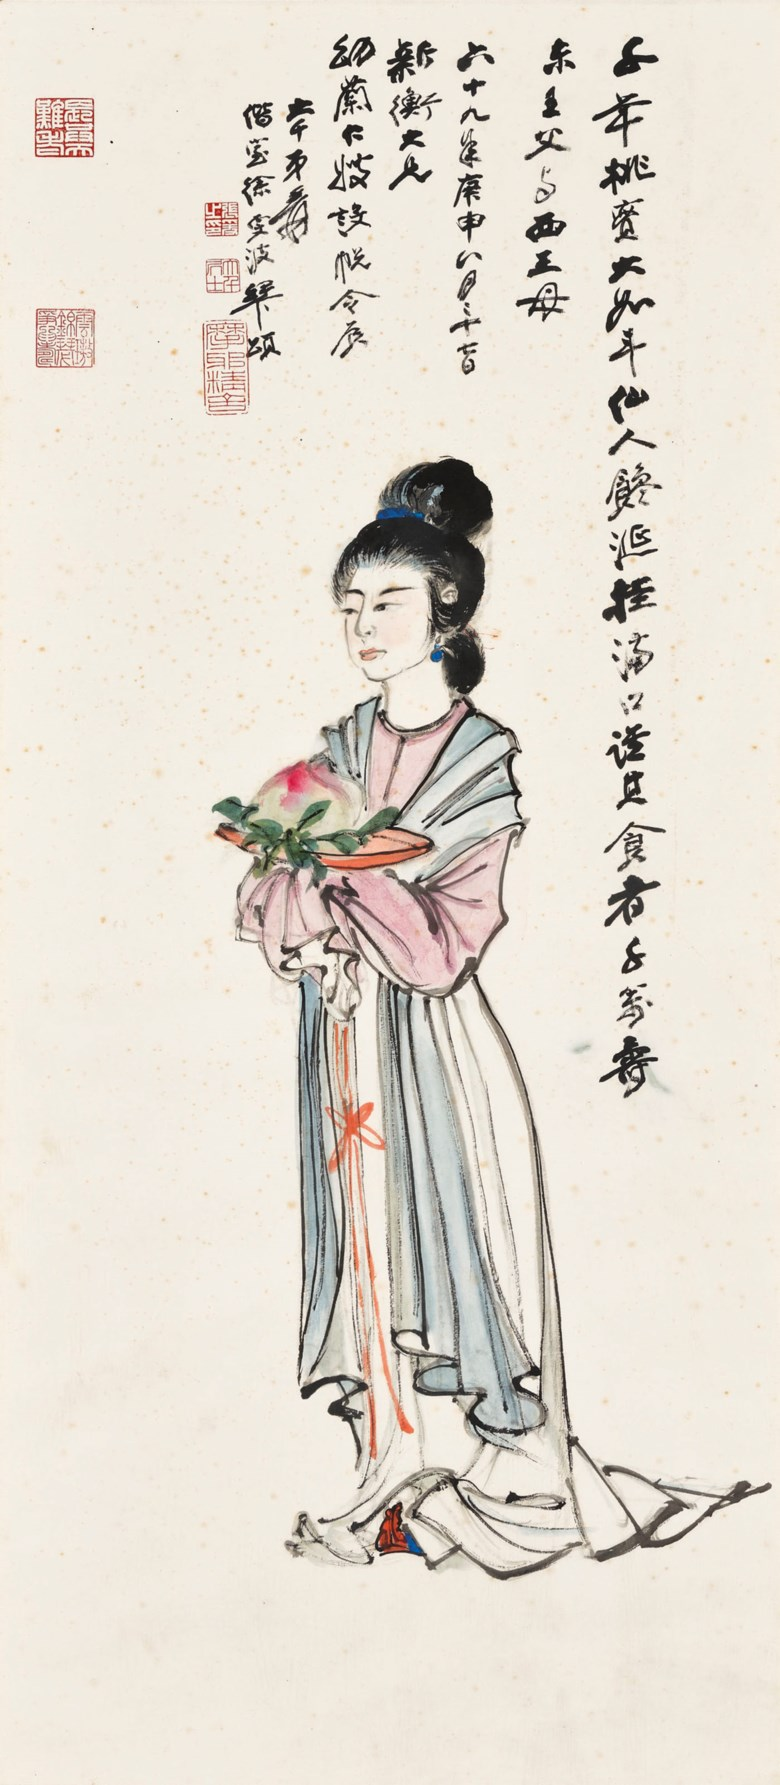 Zhang Daqian (1899-1983), Birthday Offerings. Scroll, mounted and framed, ink and colour on paper. 104.8 x 45.8  cm (41¼ x 18 in). Estimate HK$1,200,000-2,000,000. Offered in Fine Chinese Modern and Contemporary Ink Paintings on 8 July 2020 at Christie's in Hong Kong